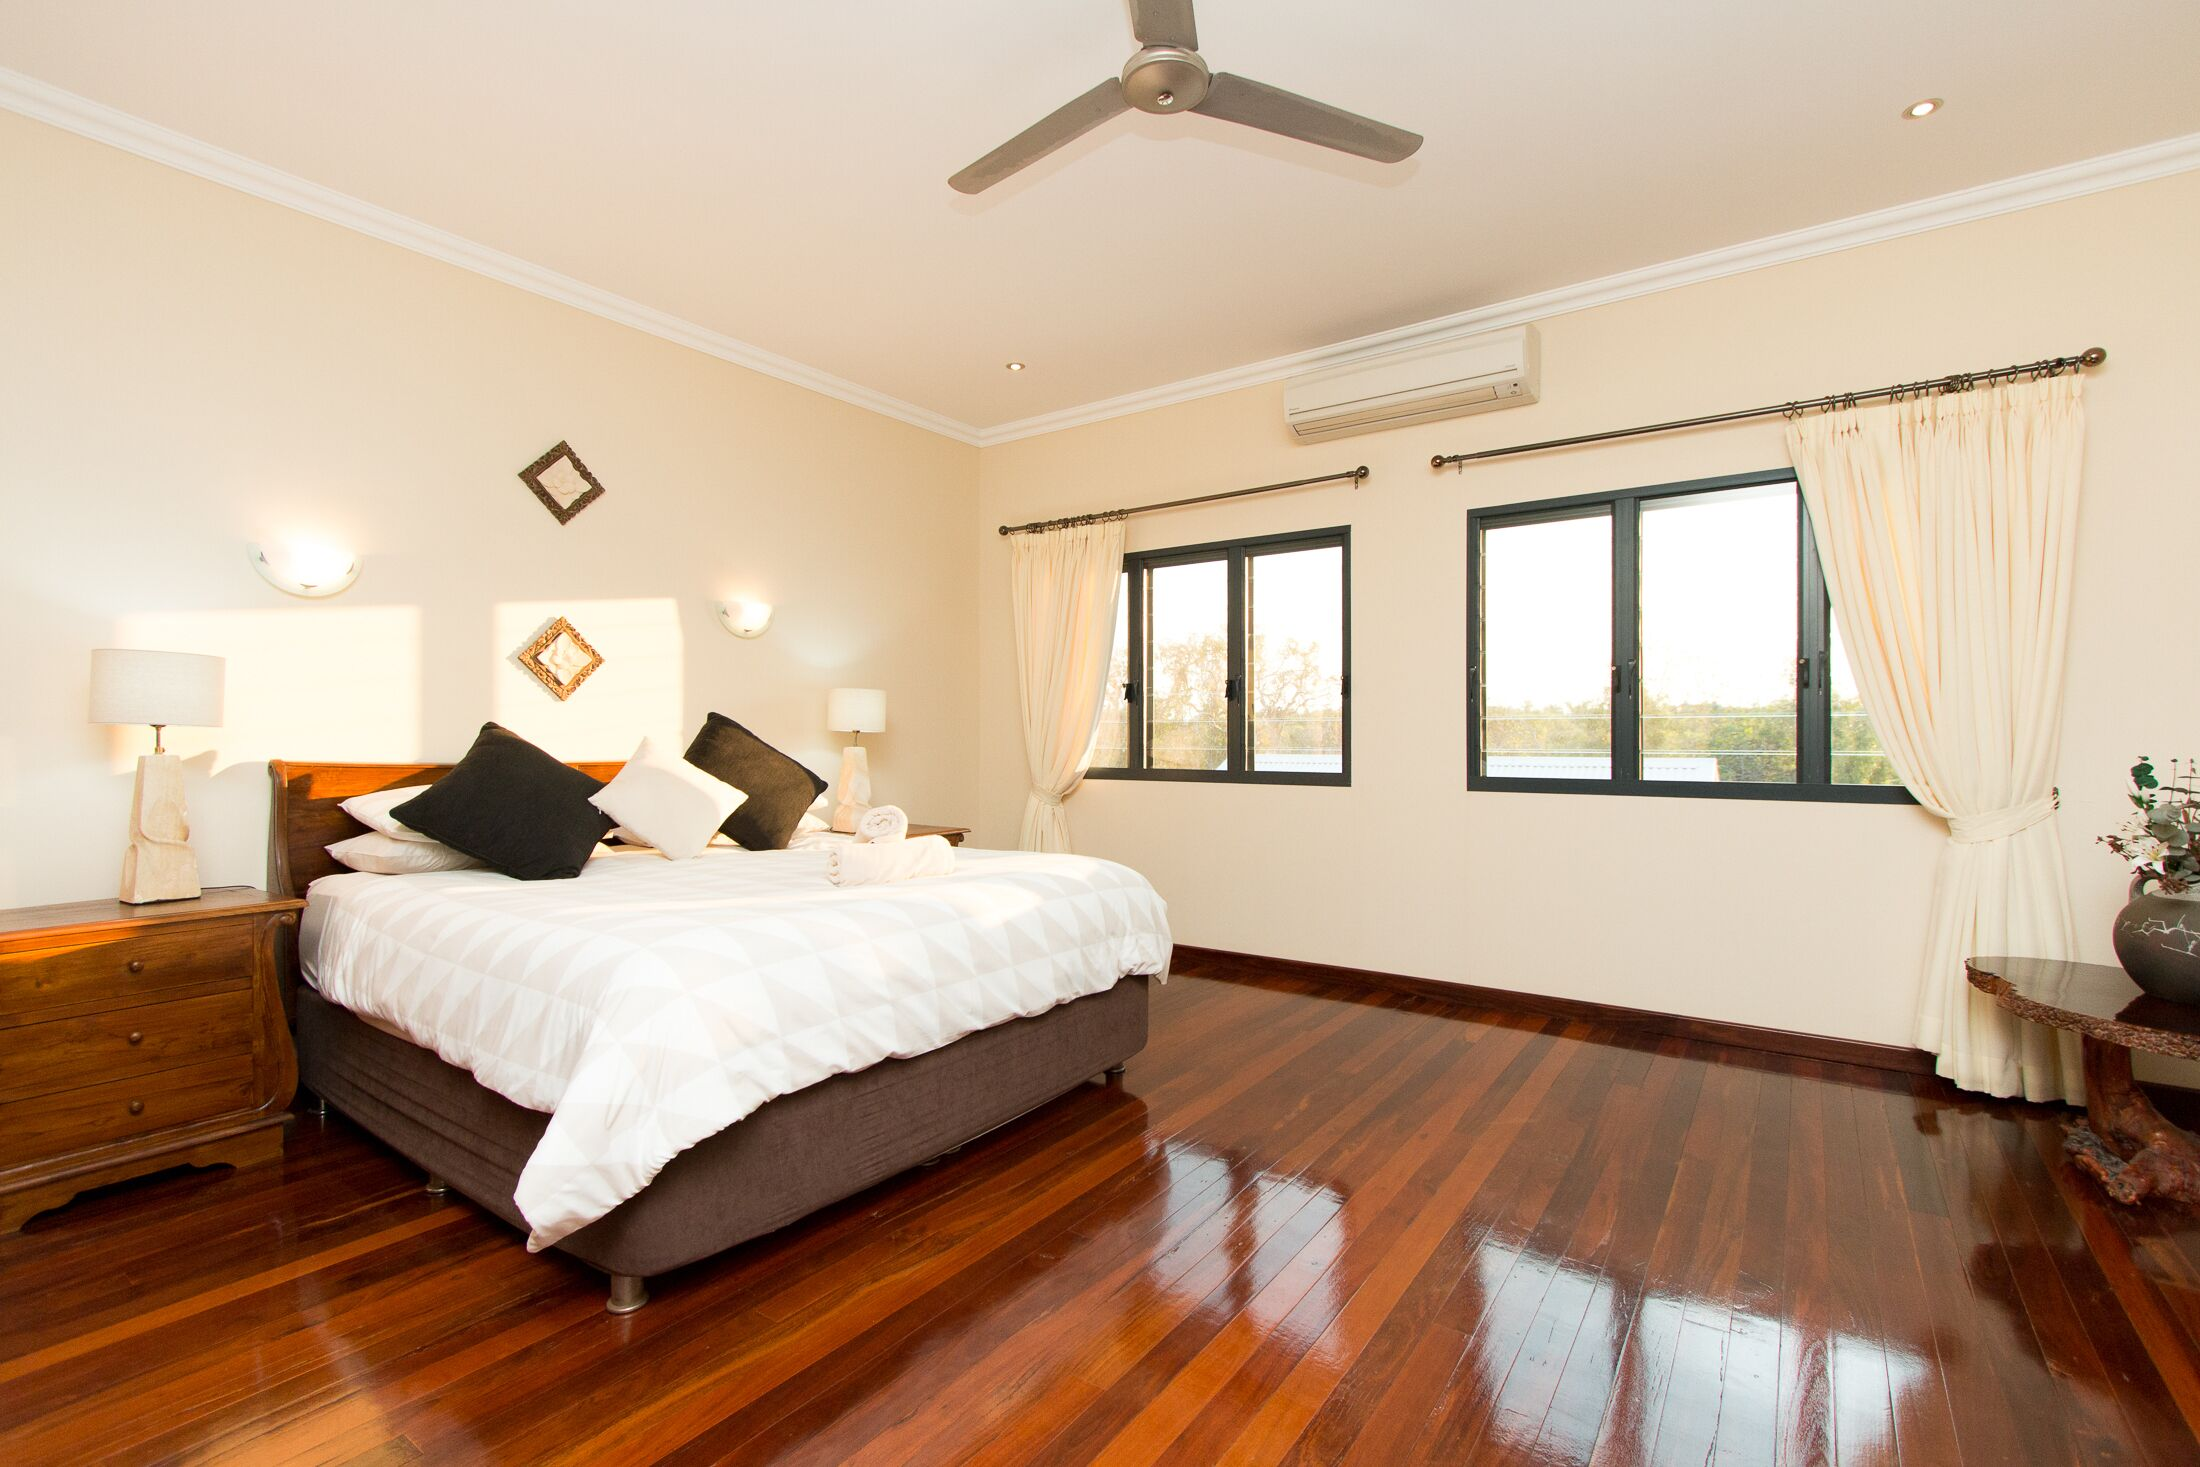 Luxury Boutique Accommodation 'Breezes of Broome' in Cable Beach